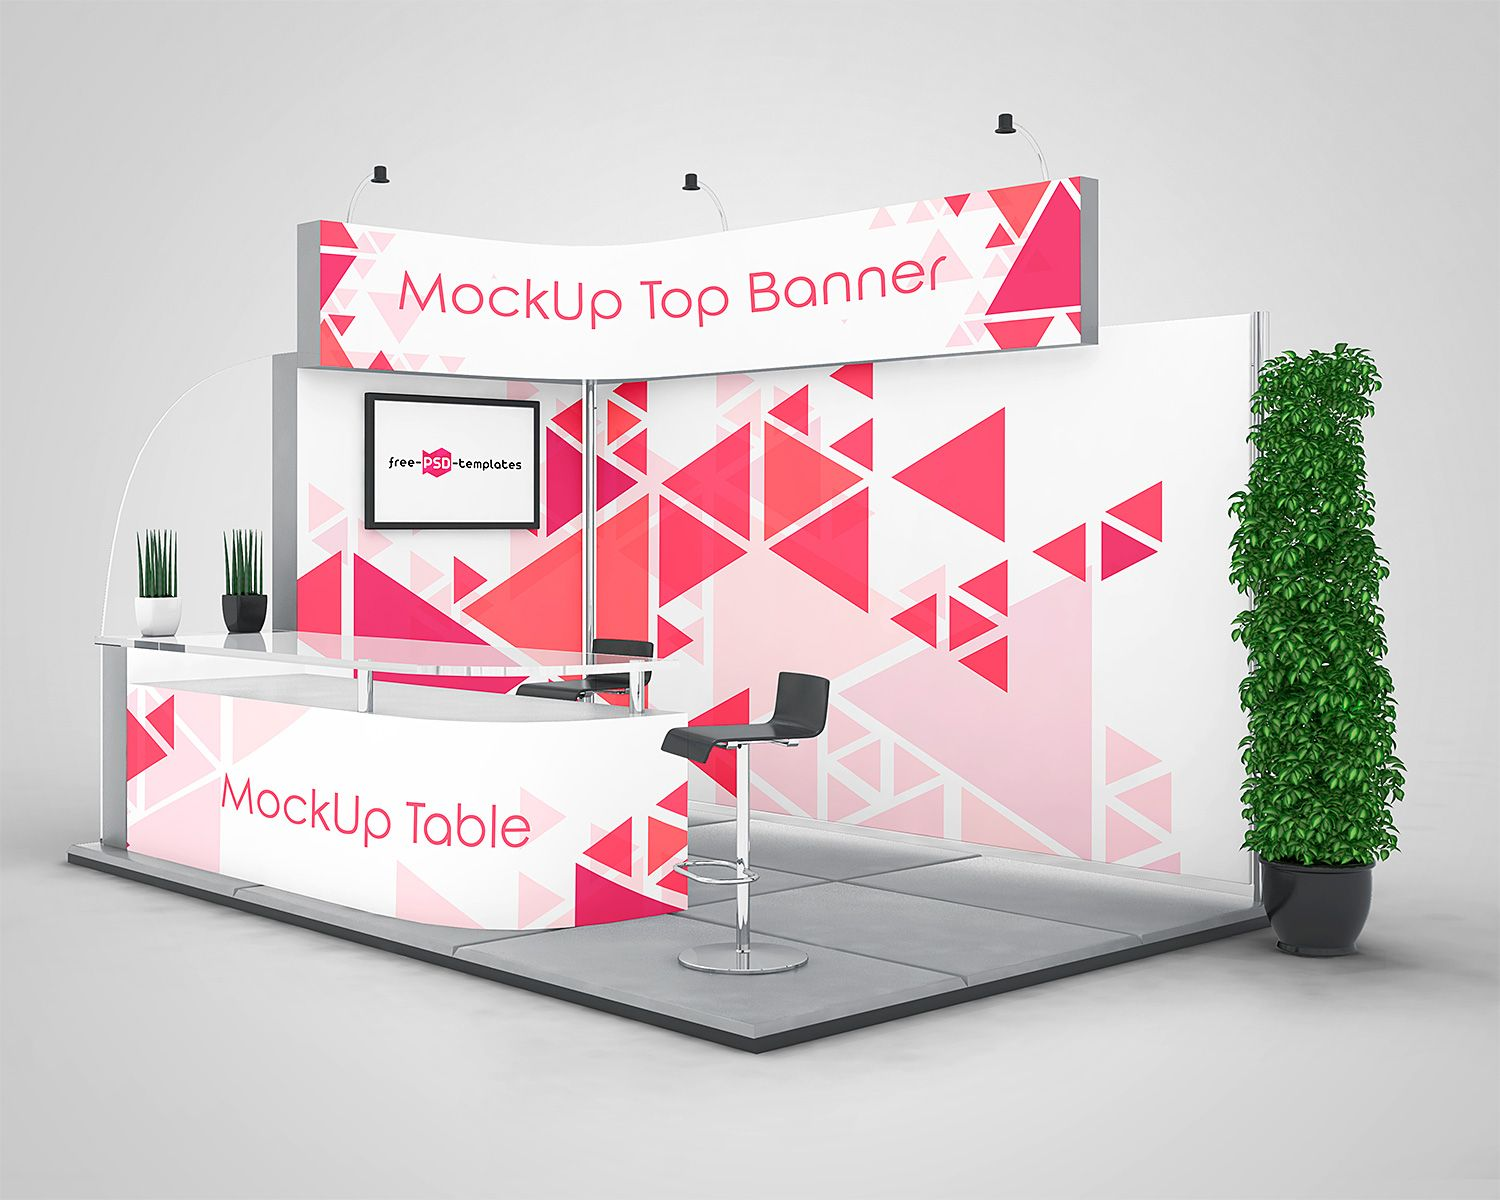 Exhibition Stall Design Software Free Download : Exhibition stand mock ups free in psd freemockup mockup